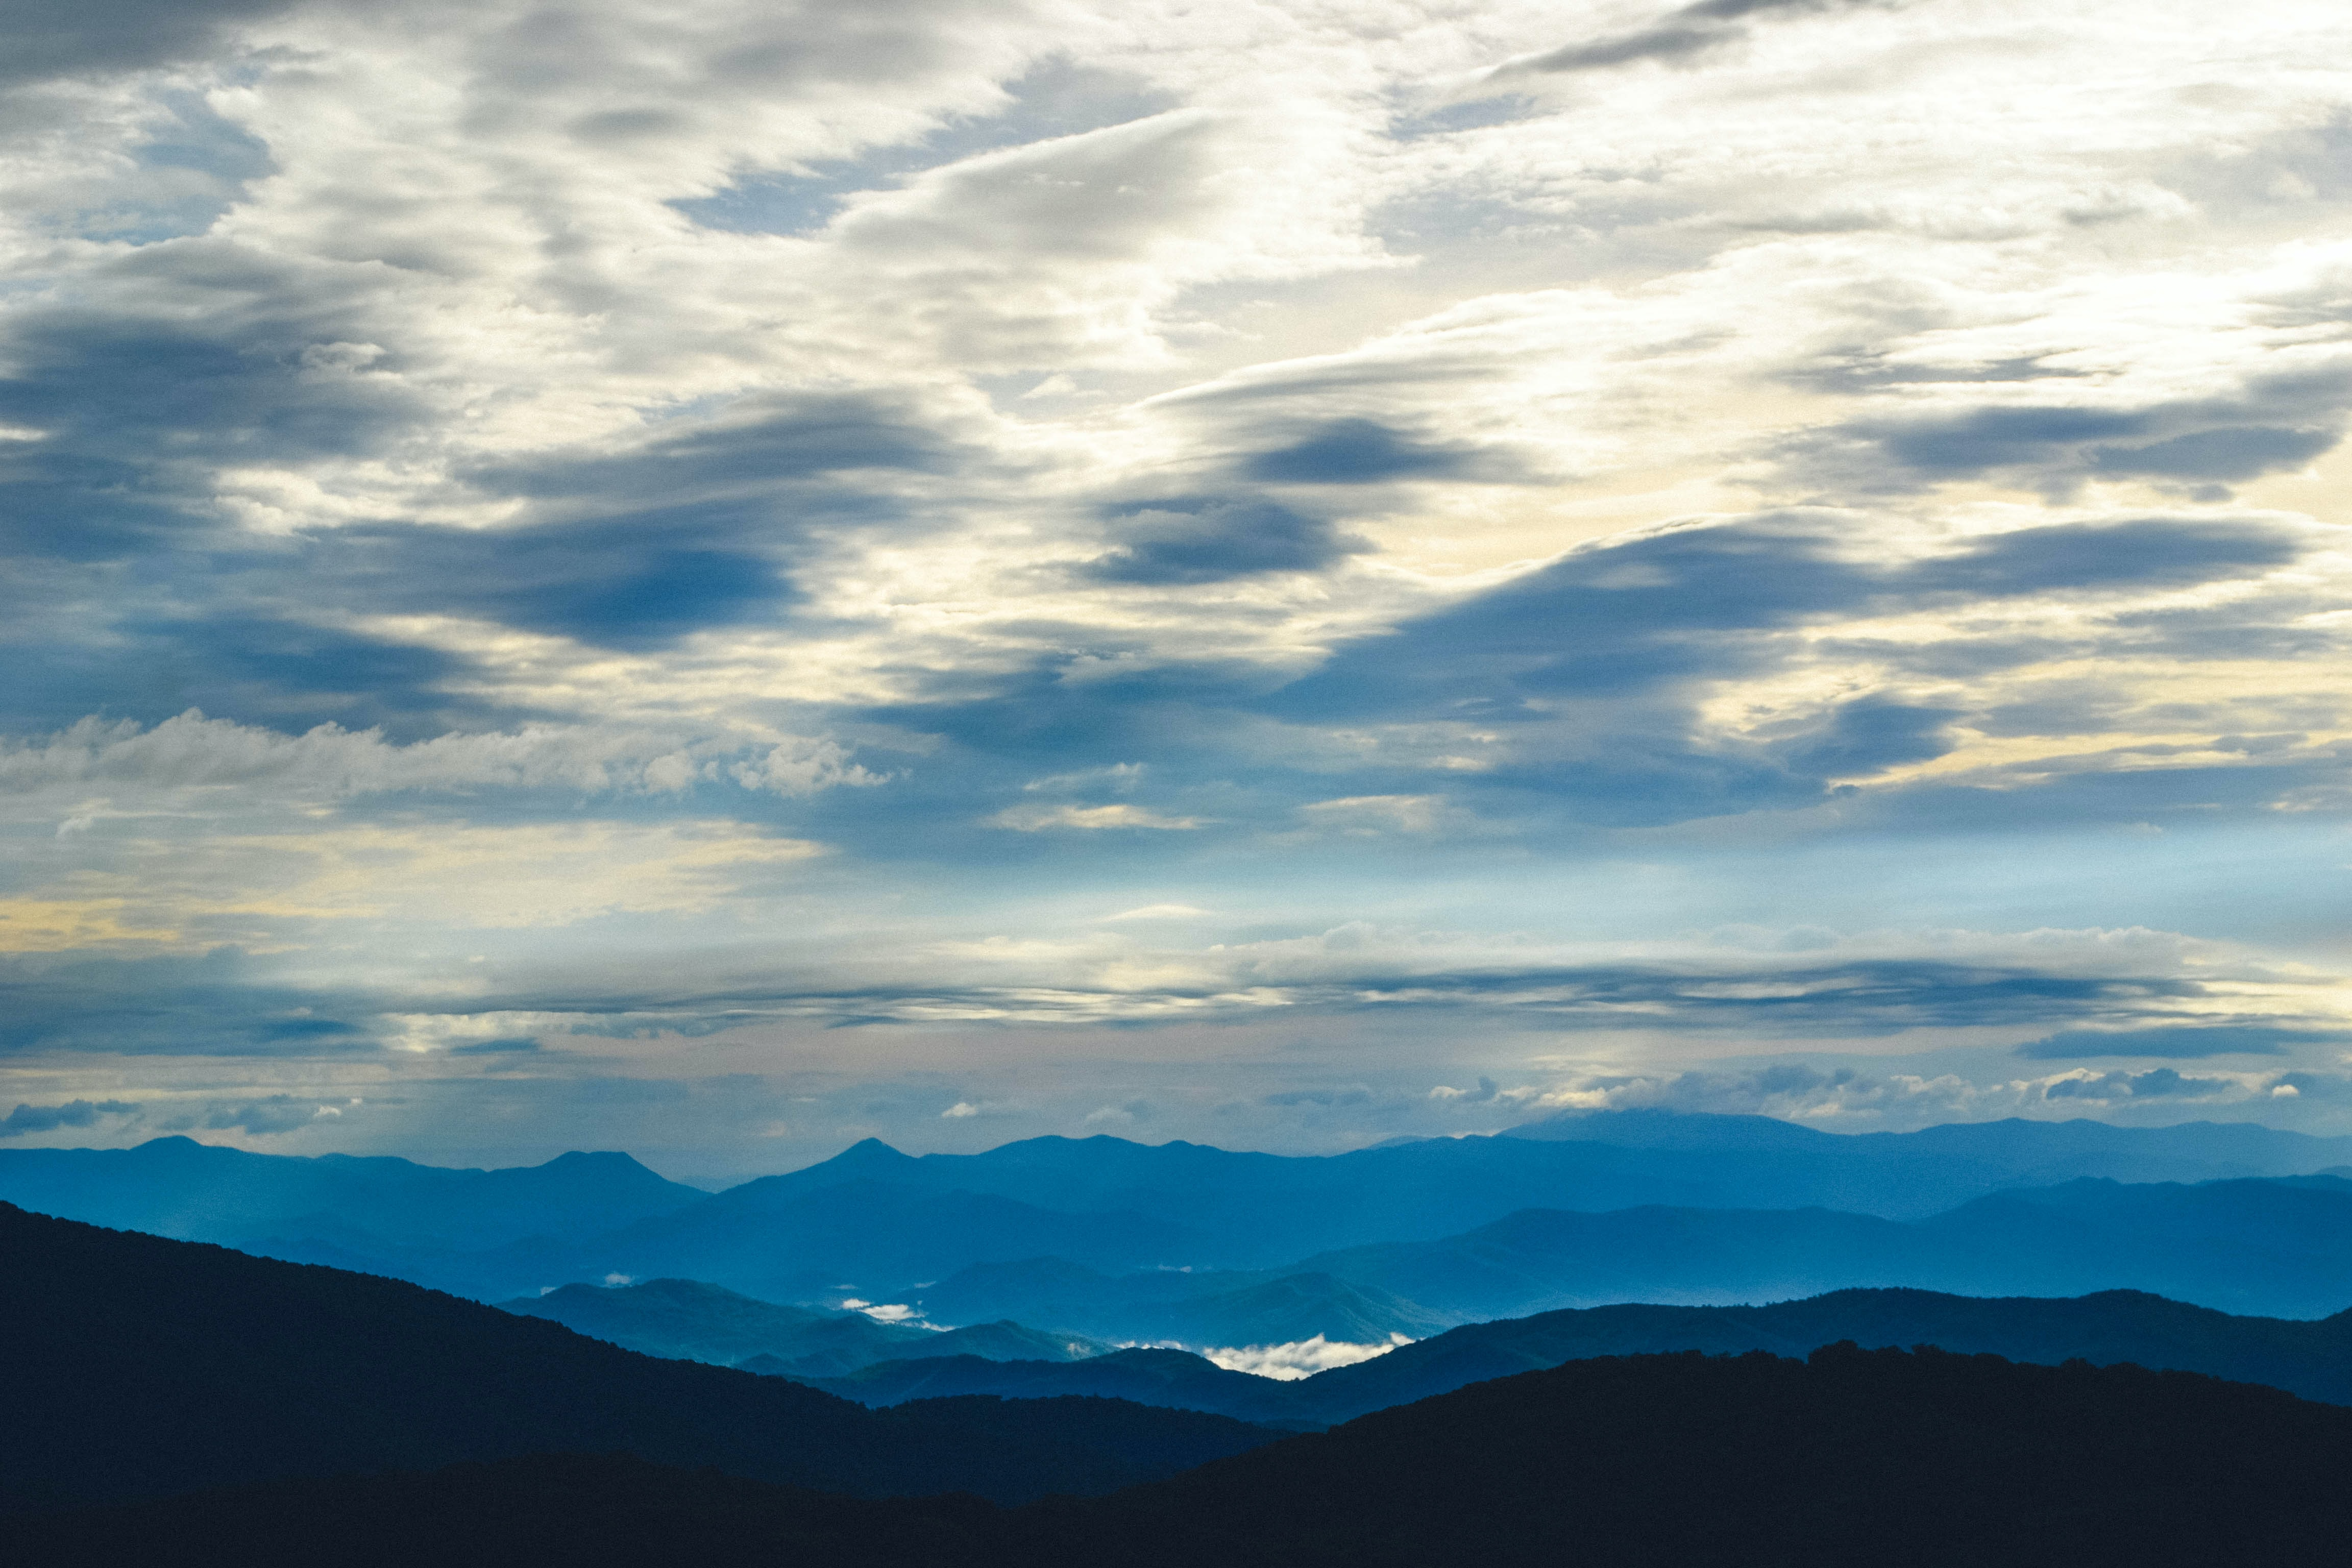 Panoramic shot of blue mountain ranges and cloudy skies.